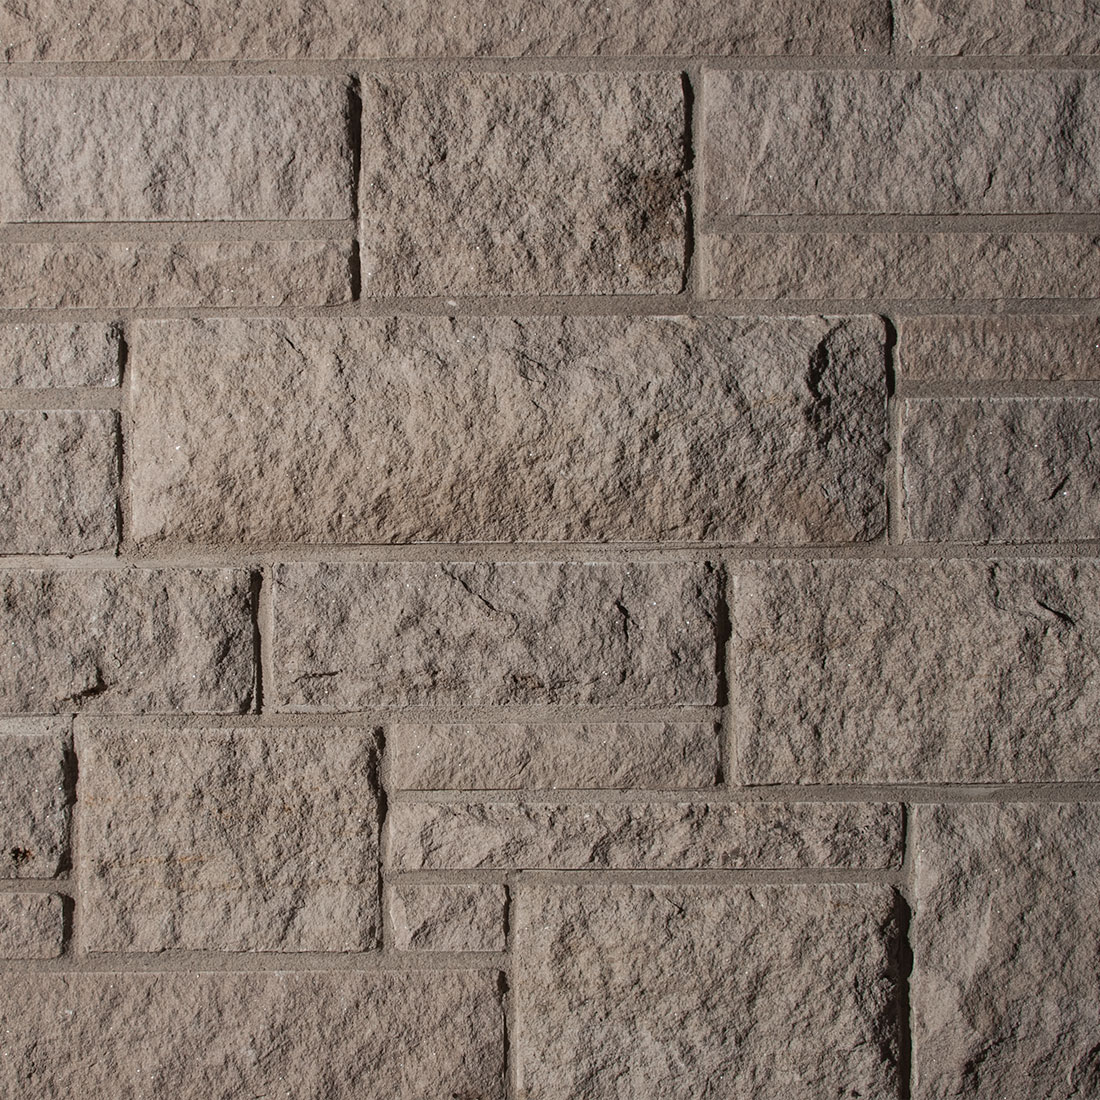 Indiana Limestone sawn bed building stone swatch